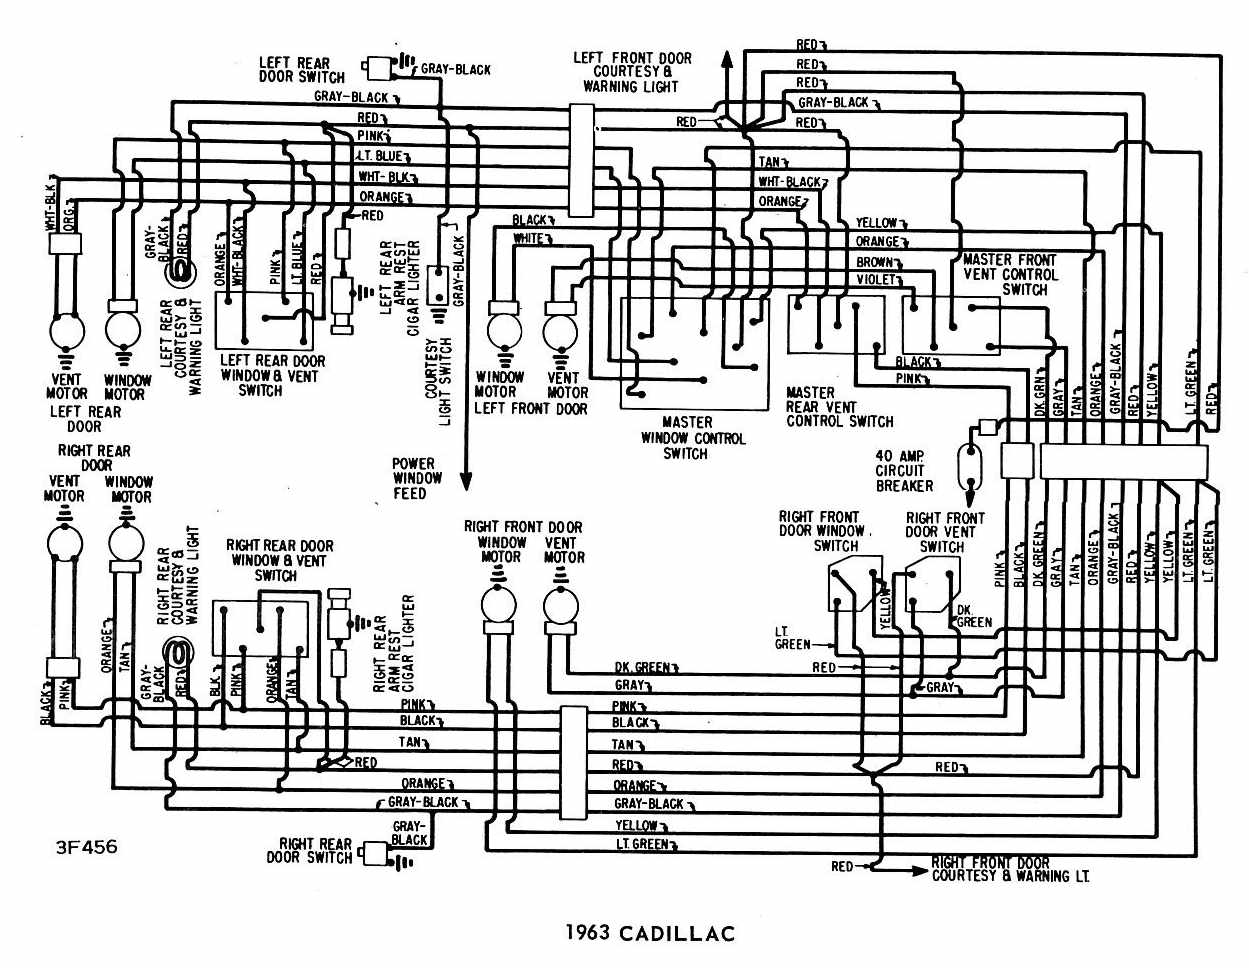 Cadillac 1963 Windows Wiring Diagram 1968 cadillac ignition wiring diagram wiring diagram data